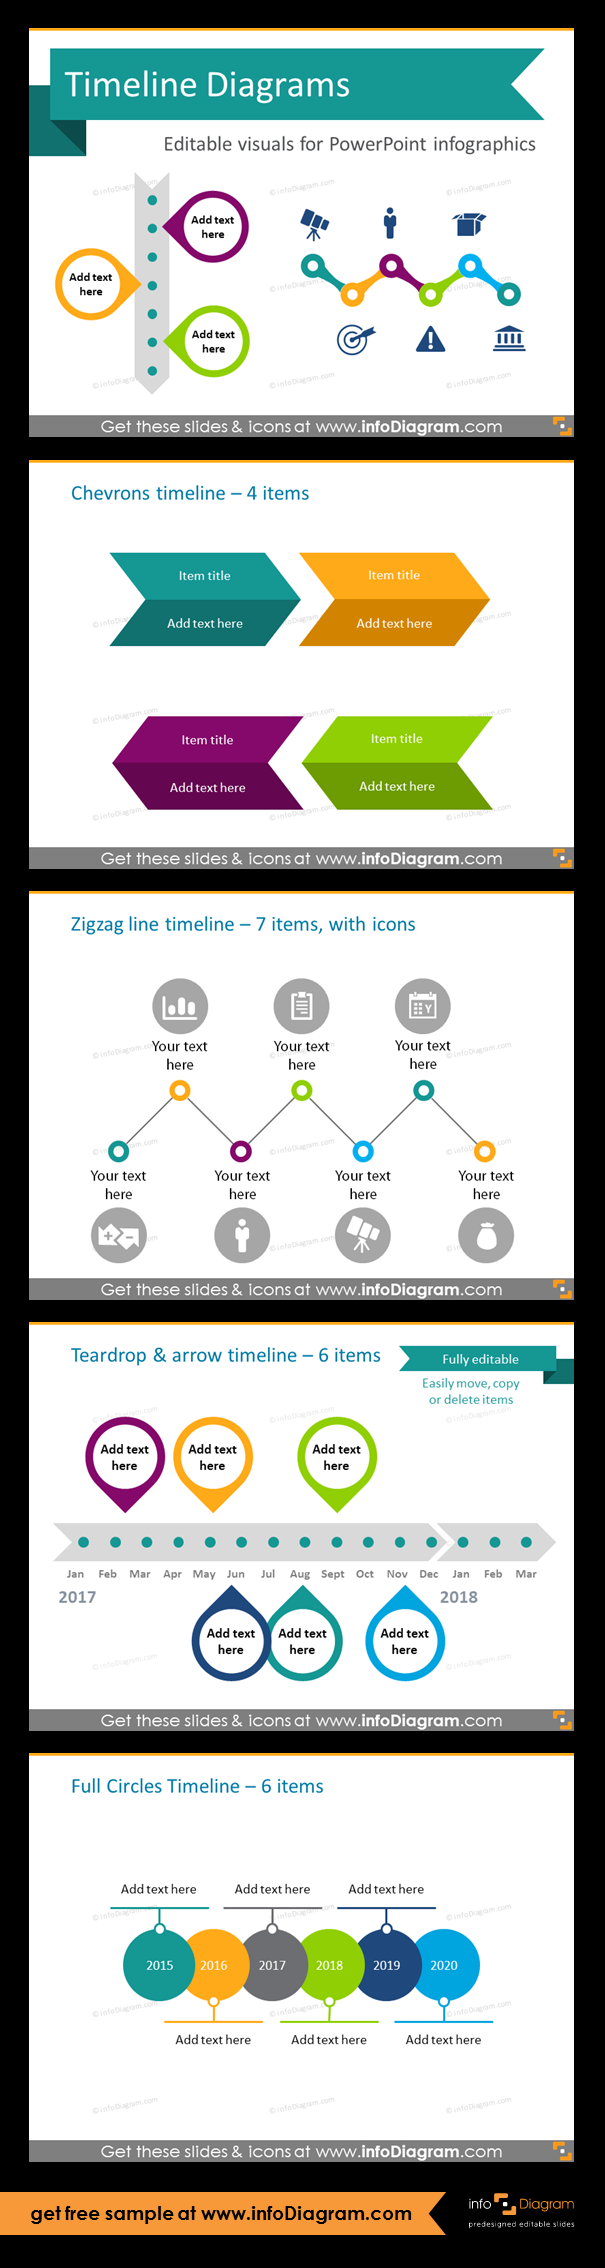 Timeline Diagram Infographics Flat Ppt Template Create Process Flow With Slides For Diagrams And Time Editable Powerpoint Graphics Showing History Agenda Linear Charts